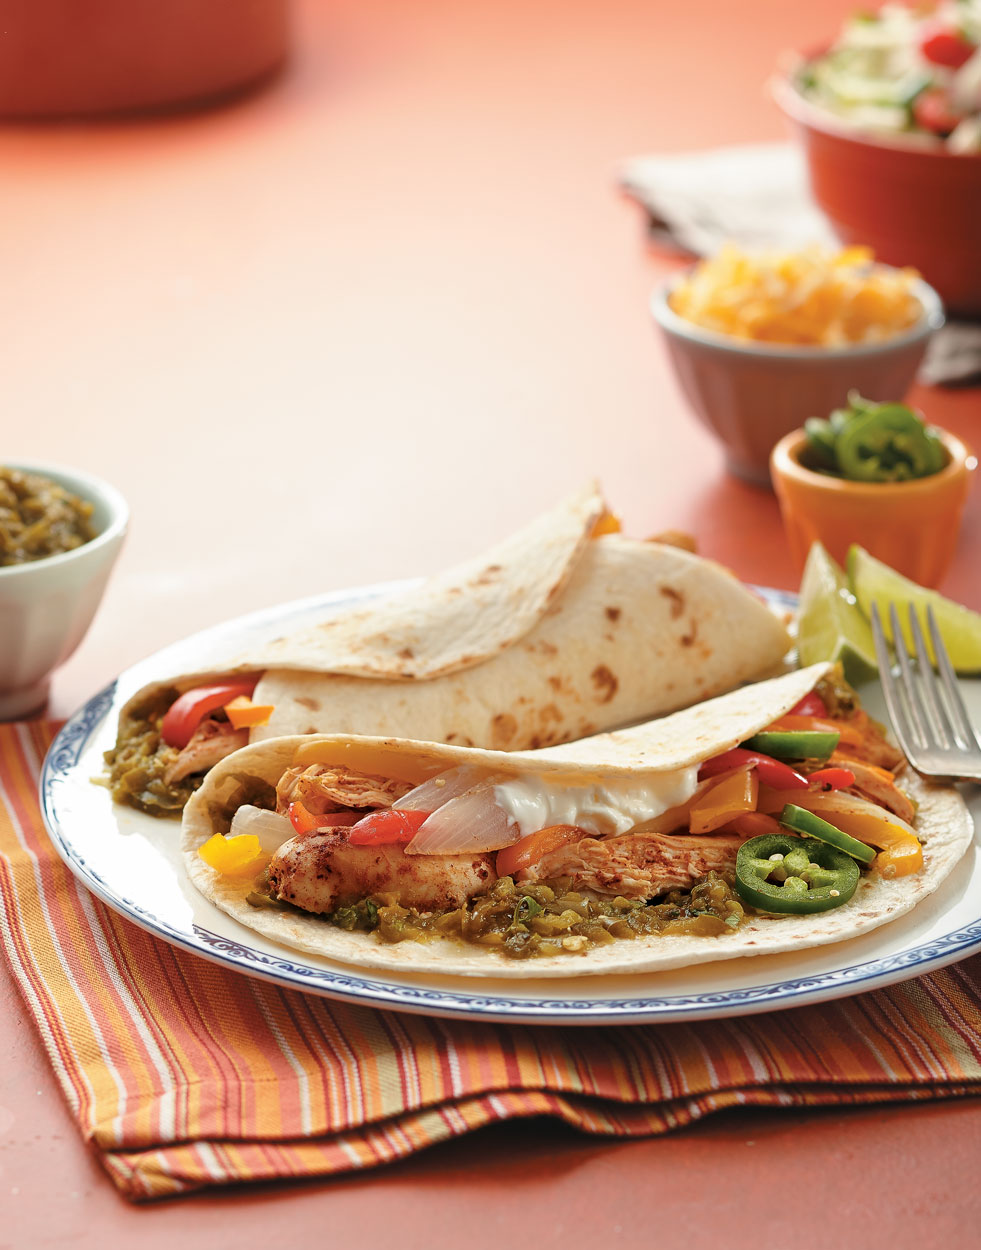 Chicken Fajitas with Green Chile Salsa